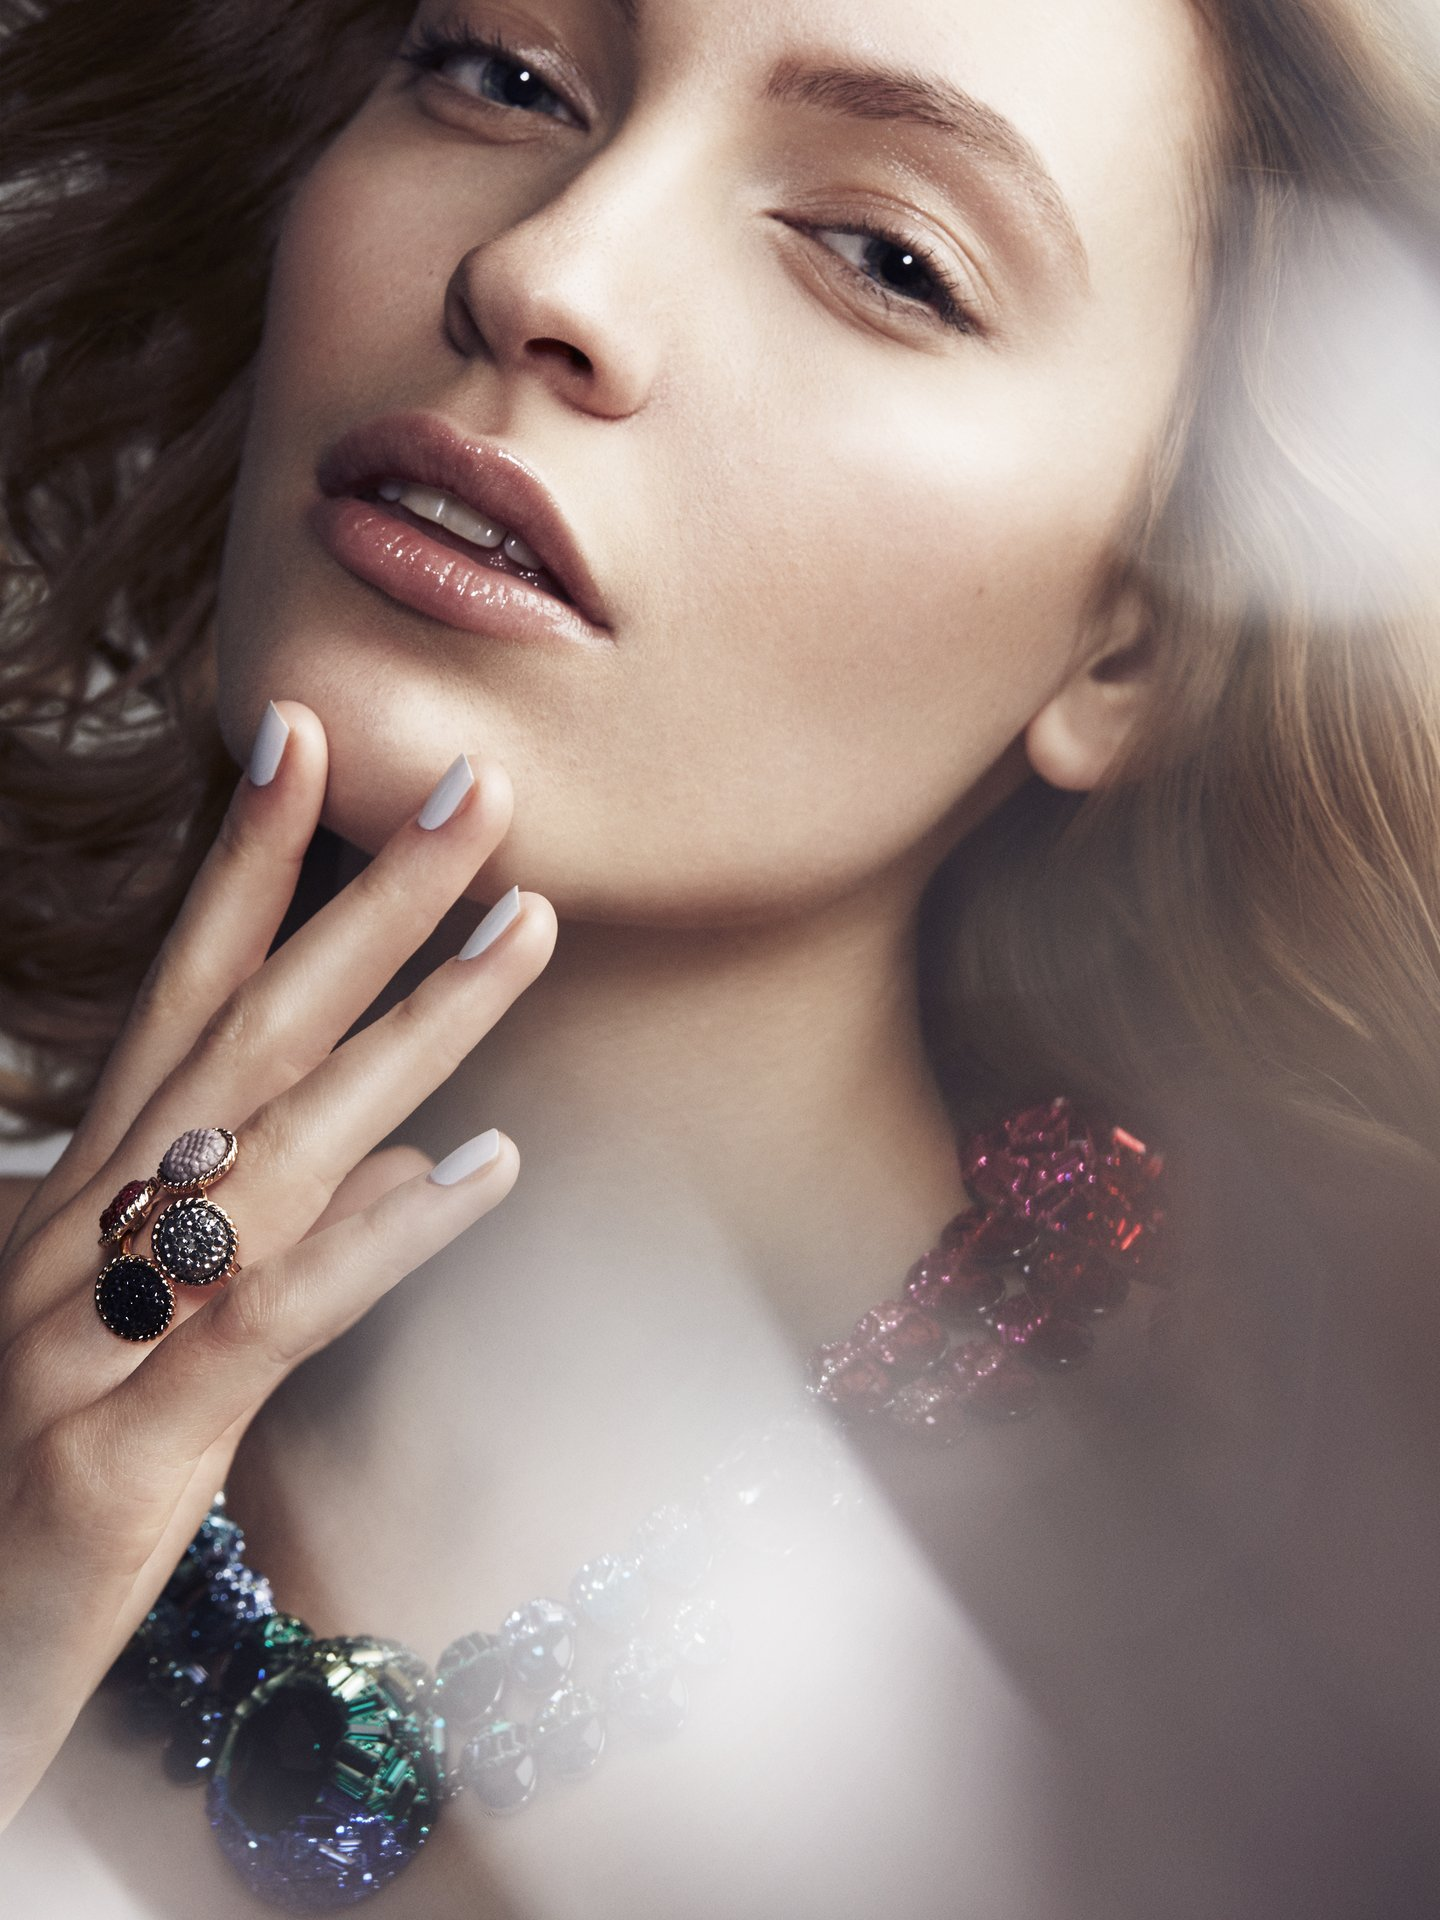 Hair, Makeup & Manicure: Melanie Volkart Photographer: Charles-Elie Lathion Model: Lena Linzing